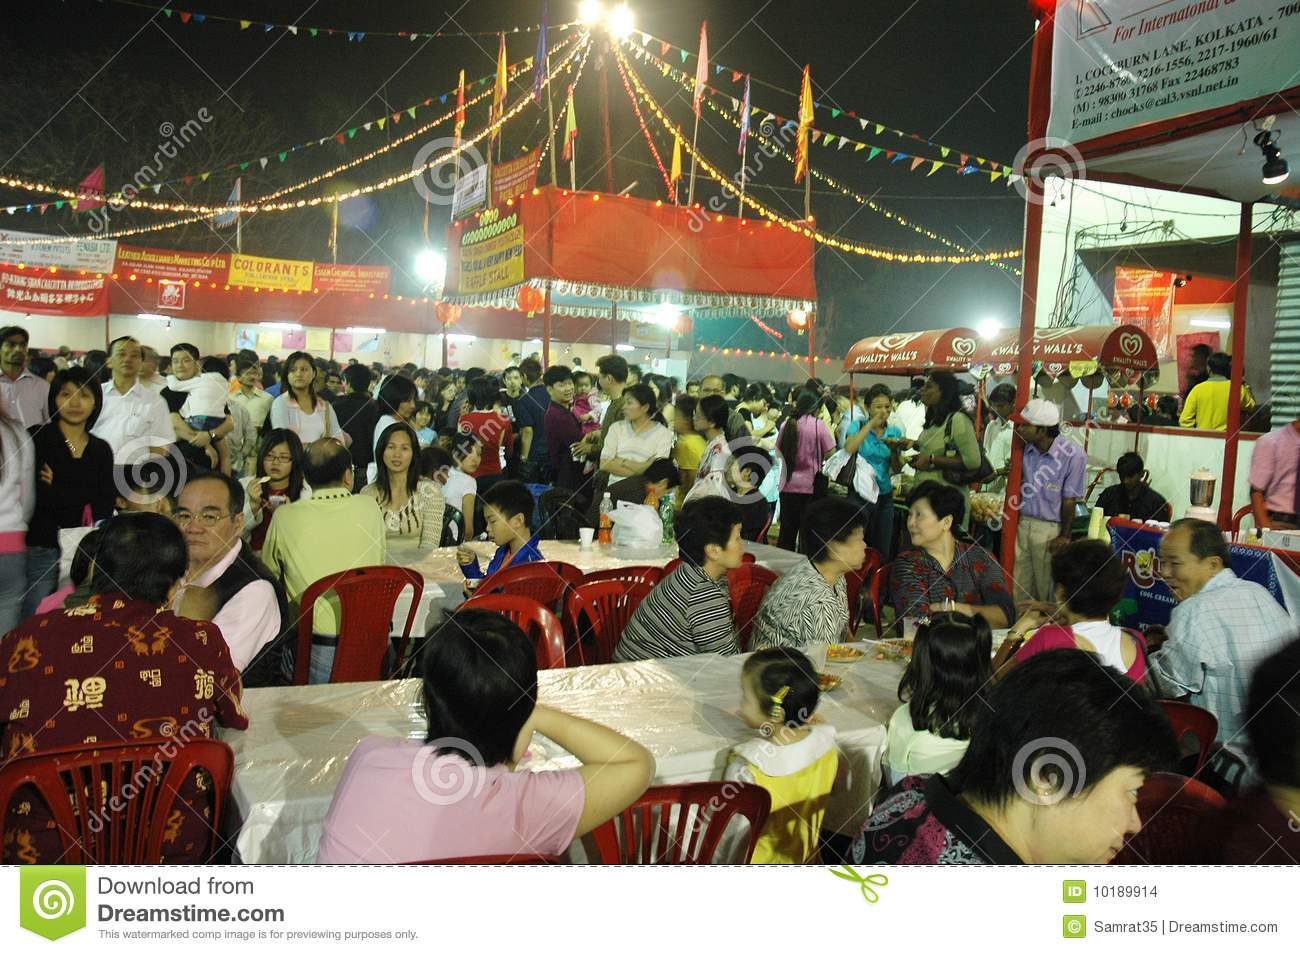 essay on new year celebration in india Parsi new year celebration in india: here's how parsis in india will celebrate jamshedi navroz 2017 on the eve of parsi new year 2017, here is everything you need to know about how jamshedi.